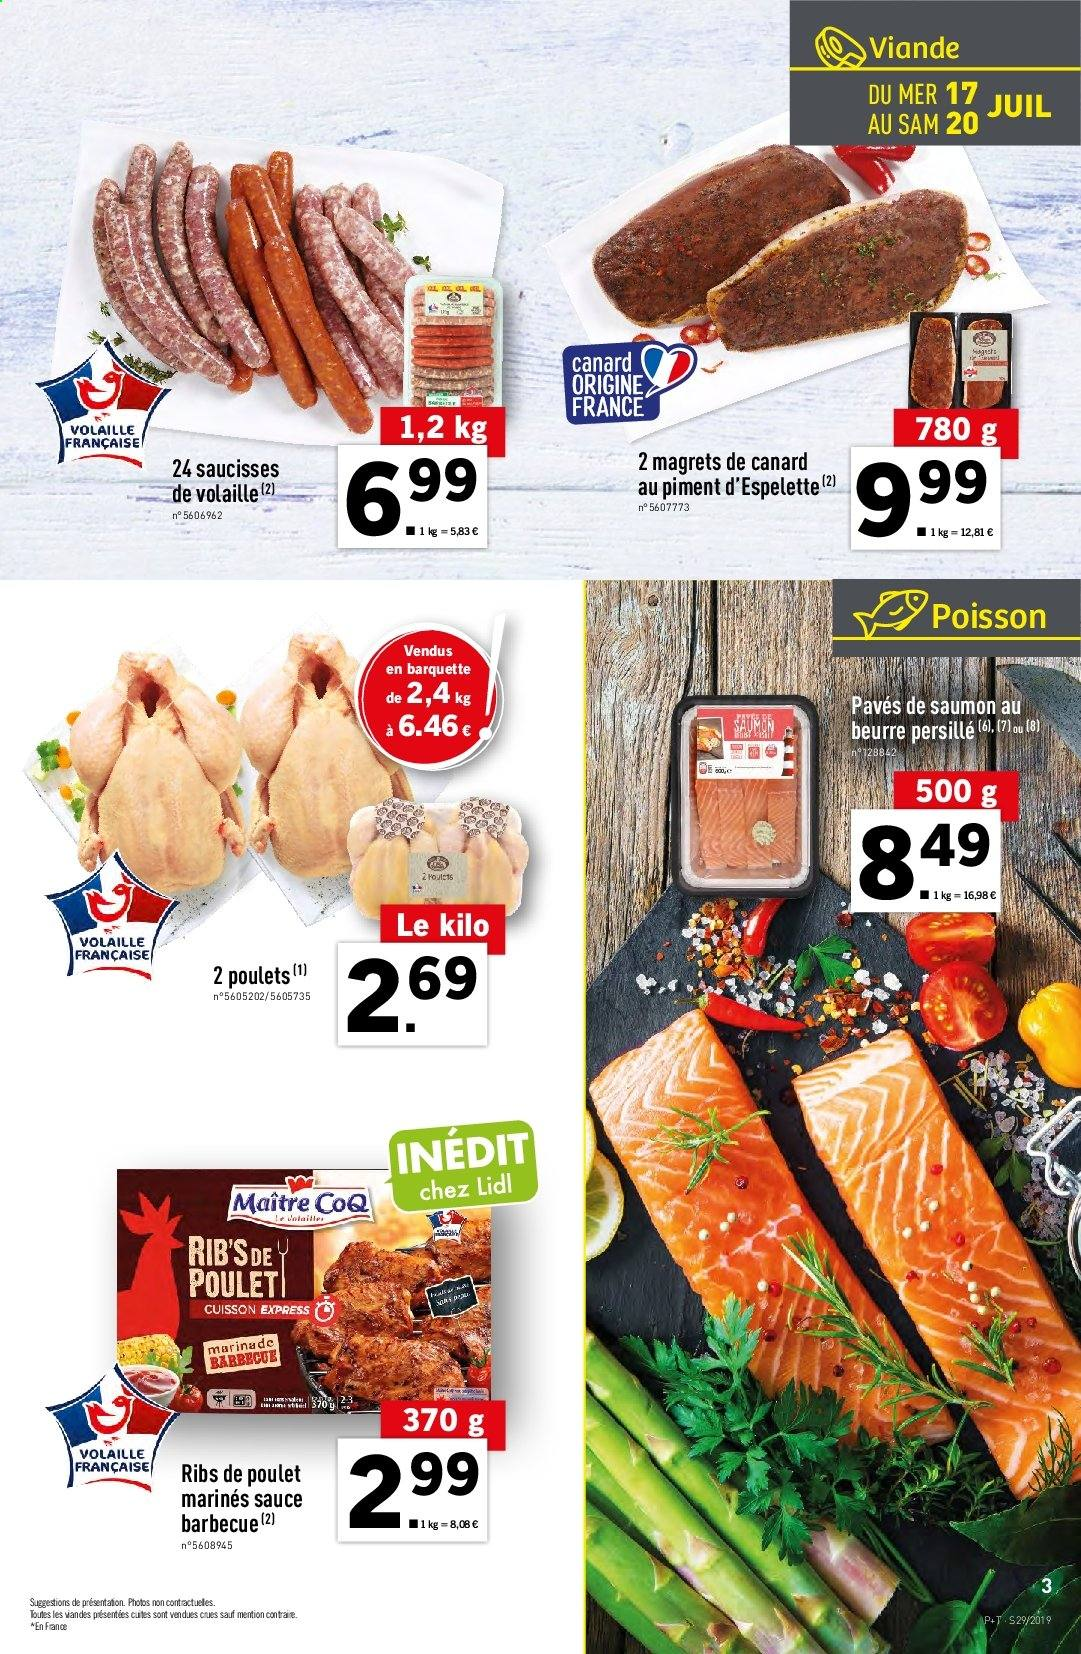 Catalogue Lidl - 17.07.2019 - 23.07.2019. Page 3.